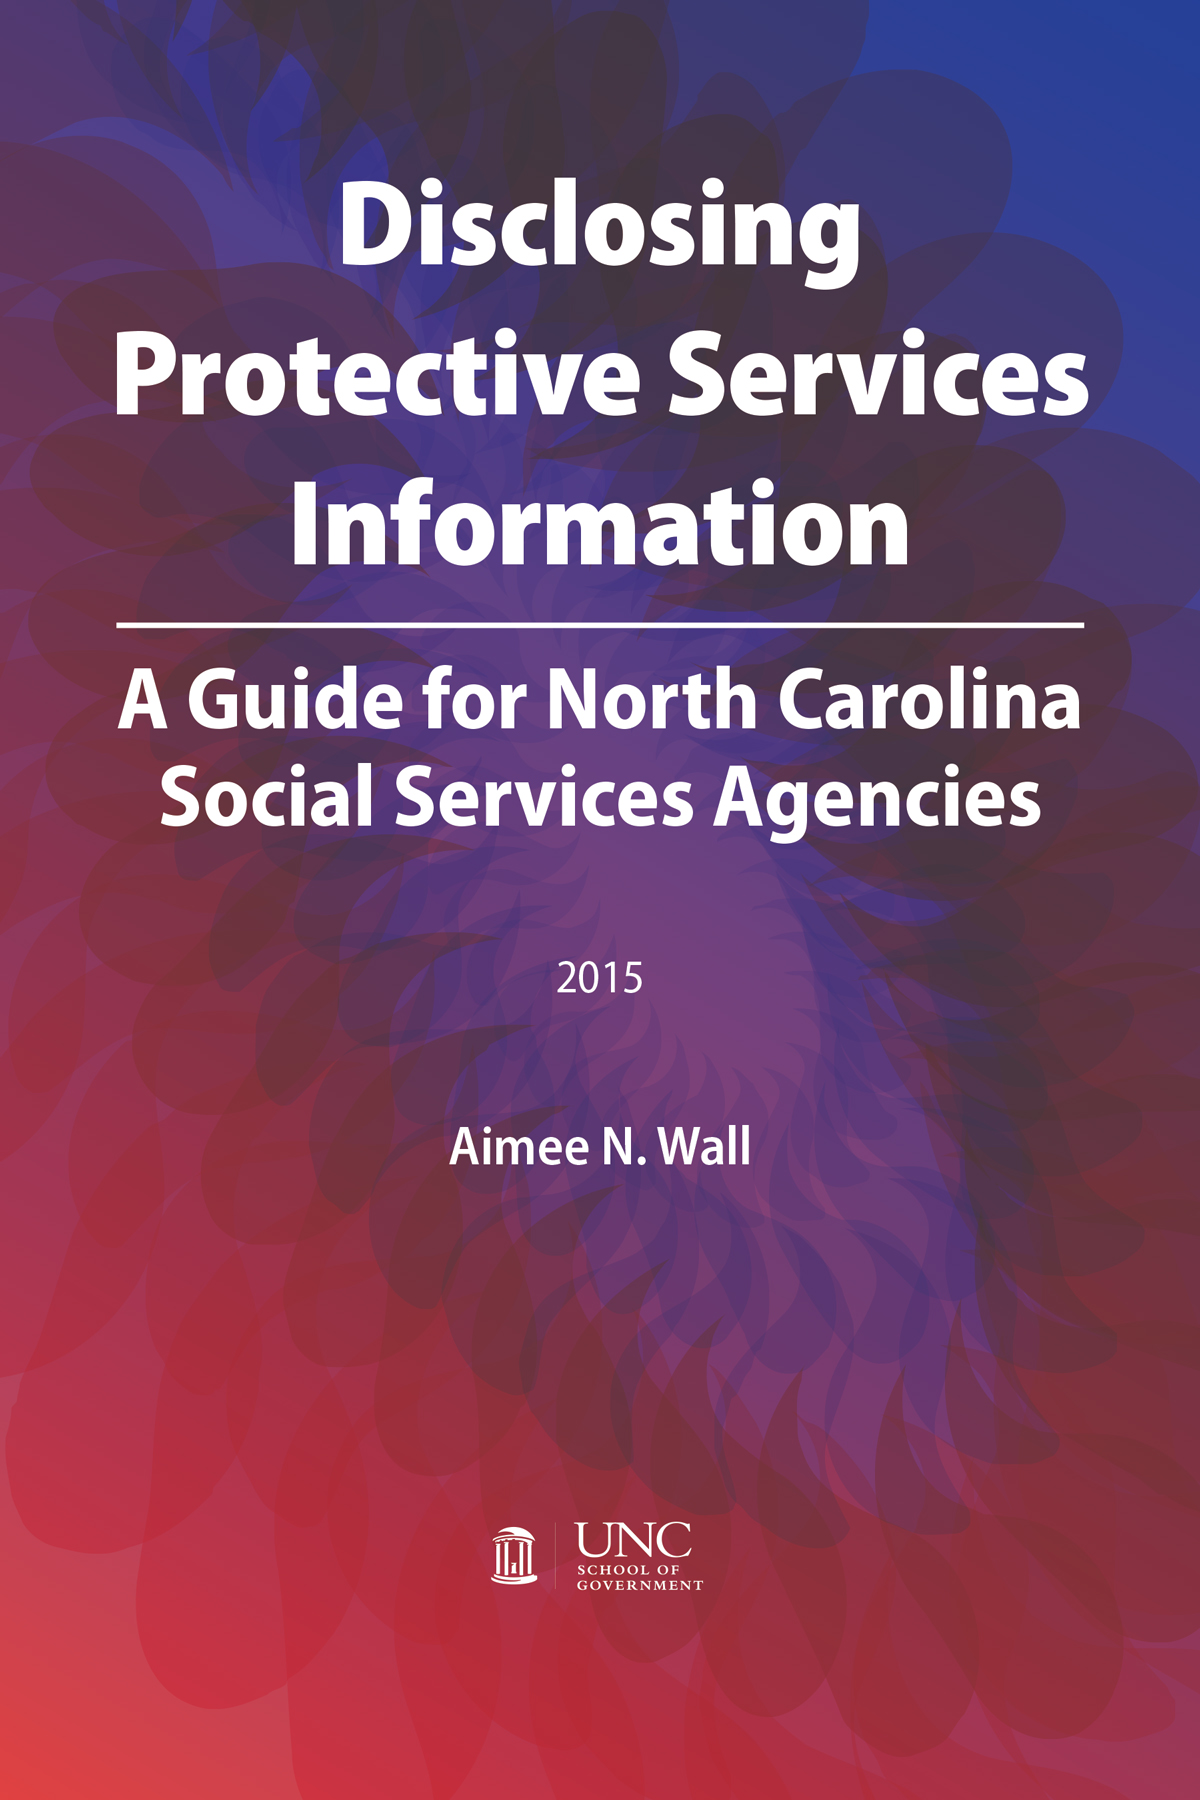 Disclosing Protective Services Information: A Guide for North Carolina Social Services Agencies, 2015, Aimee N. Wall